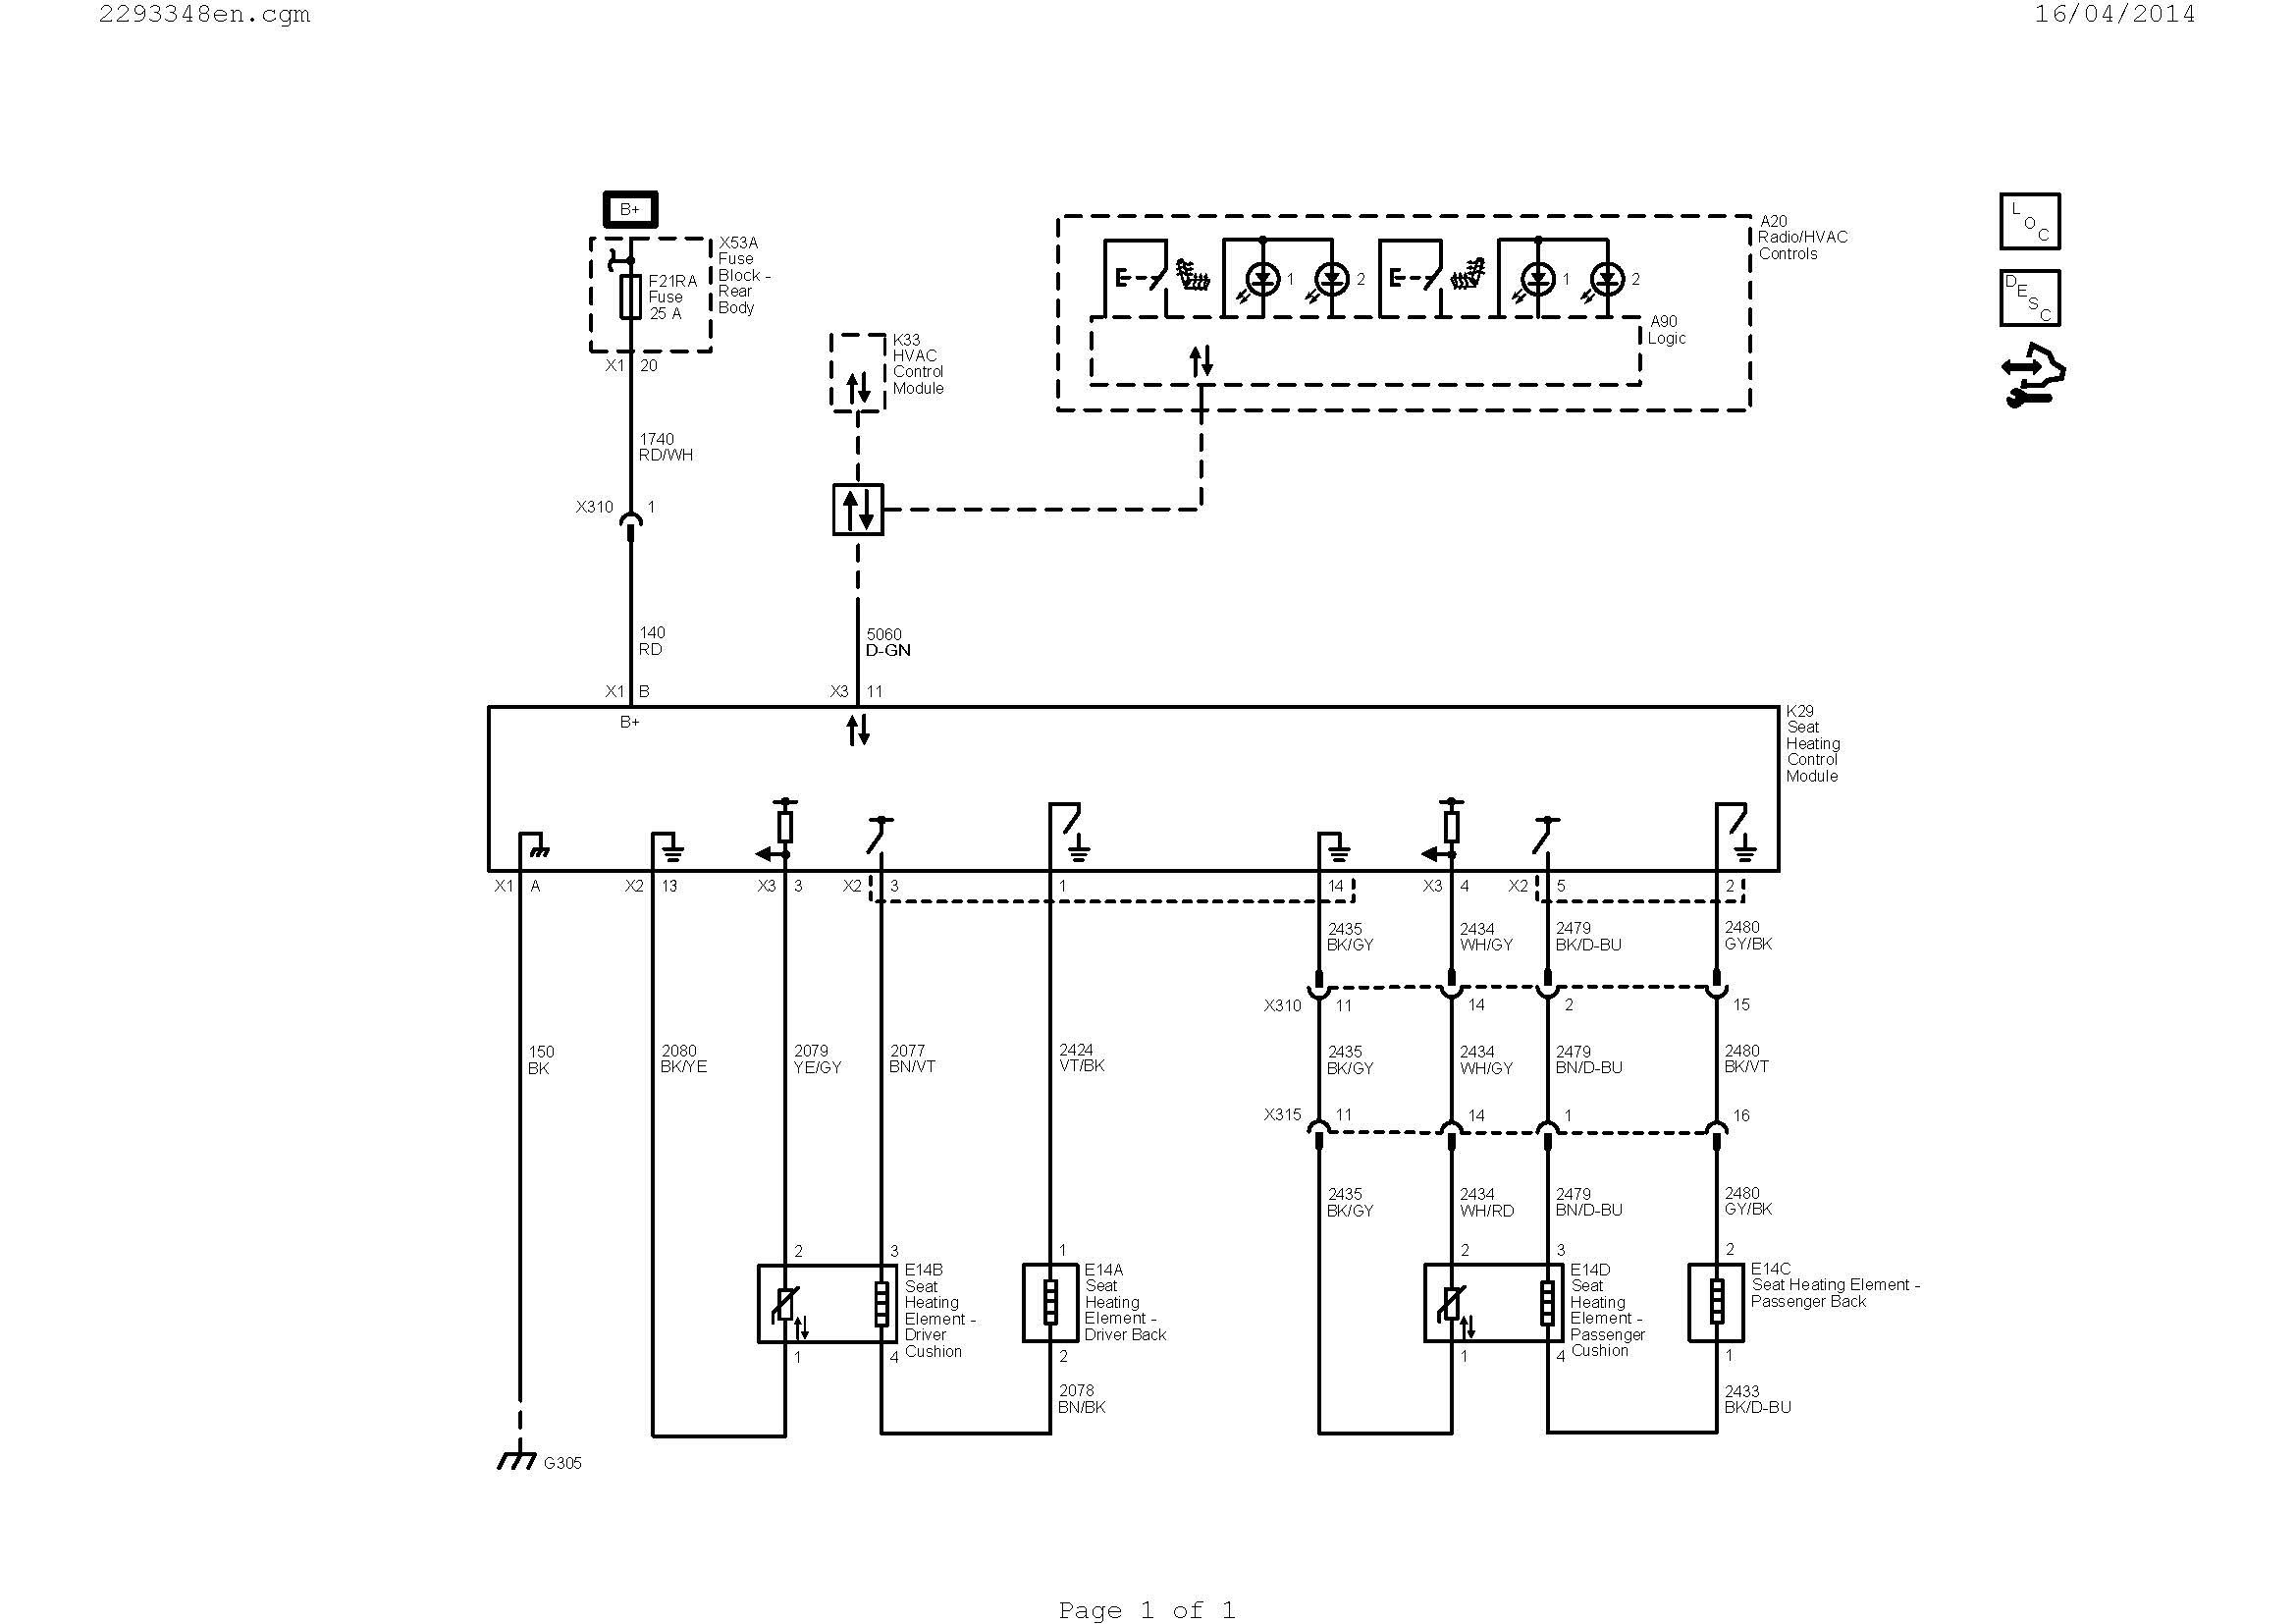 polaris ranger wiring diagram Download-headphone wiring diagram Download understanding hvac wiring diagrams Download Diagram Websites Unique Hvac Diagram 0d DOWNLOAD Wiring Diagram 10-b